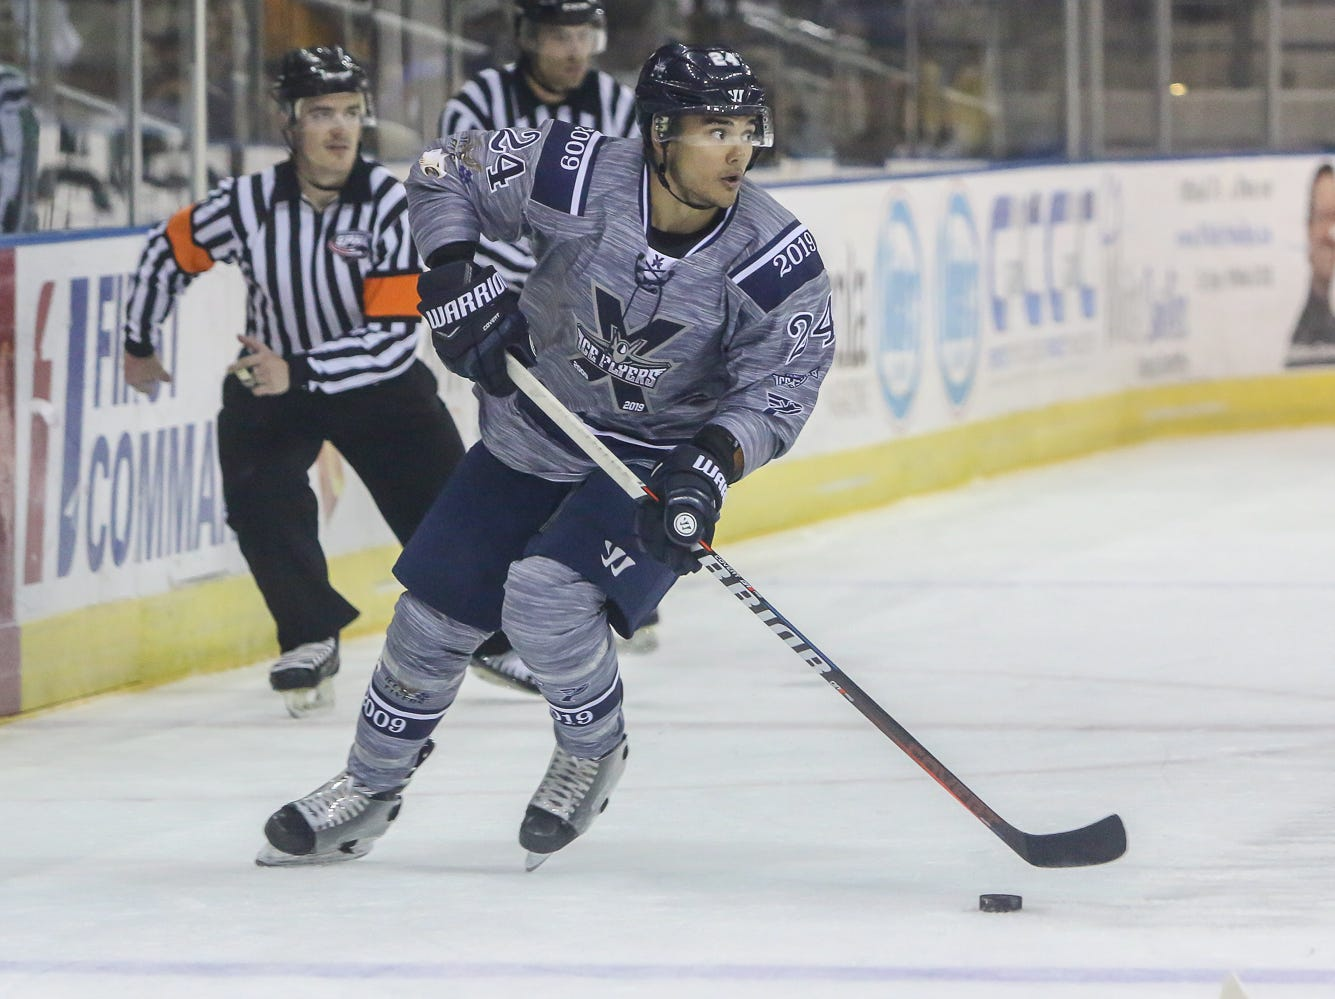 Pensacola's Eddie Matsushima (24) looks for an open teammate to pass the puck to against Macon during the last home game of the regular season at the Pensacola Bay Center on Saturday, March 23, 2019. With over 4,300 people in attendance for Pensacola's 3-1 victory, the Ice Flyers mark six straight years of over 100,000 people at their home games each season. The team has won their last five games in a row and will finish out their last five games on the road before entering the playoffs in a couple of weeks.